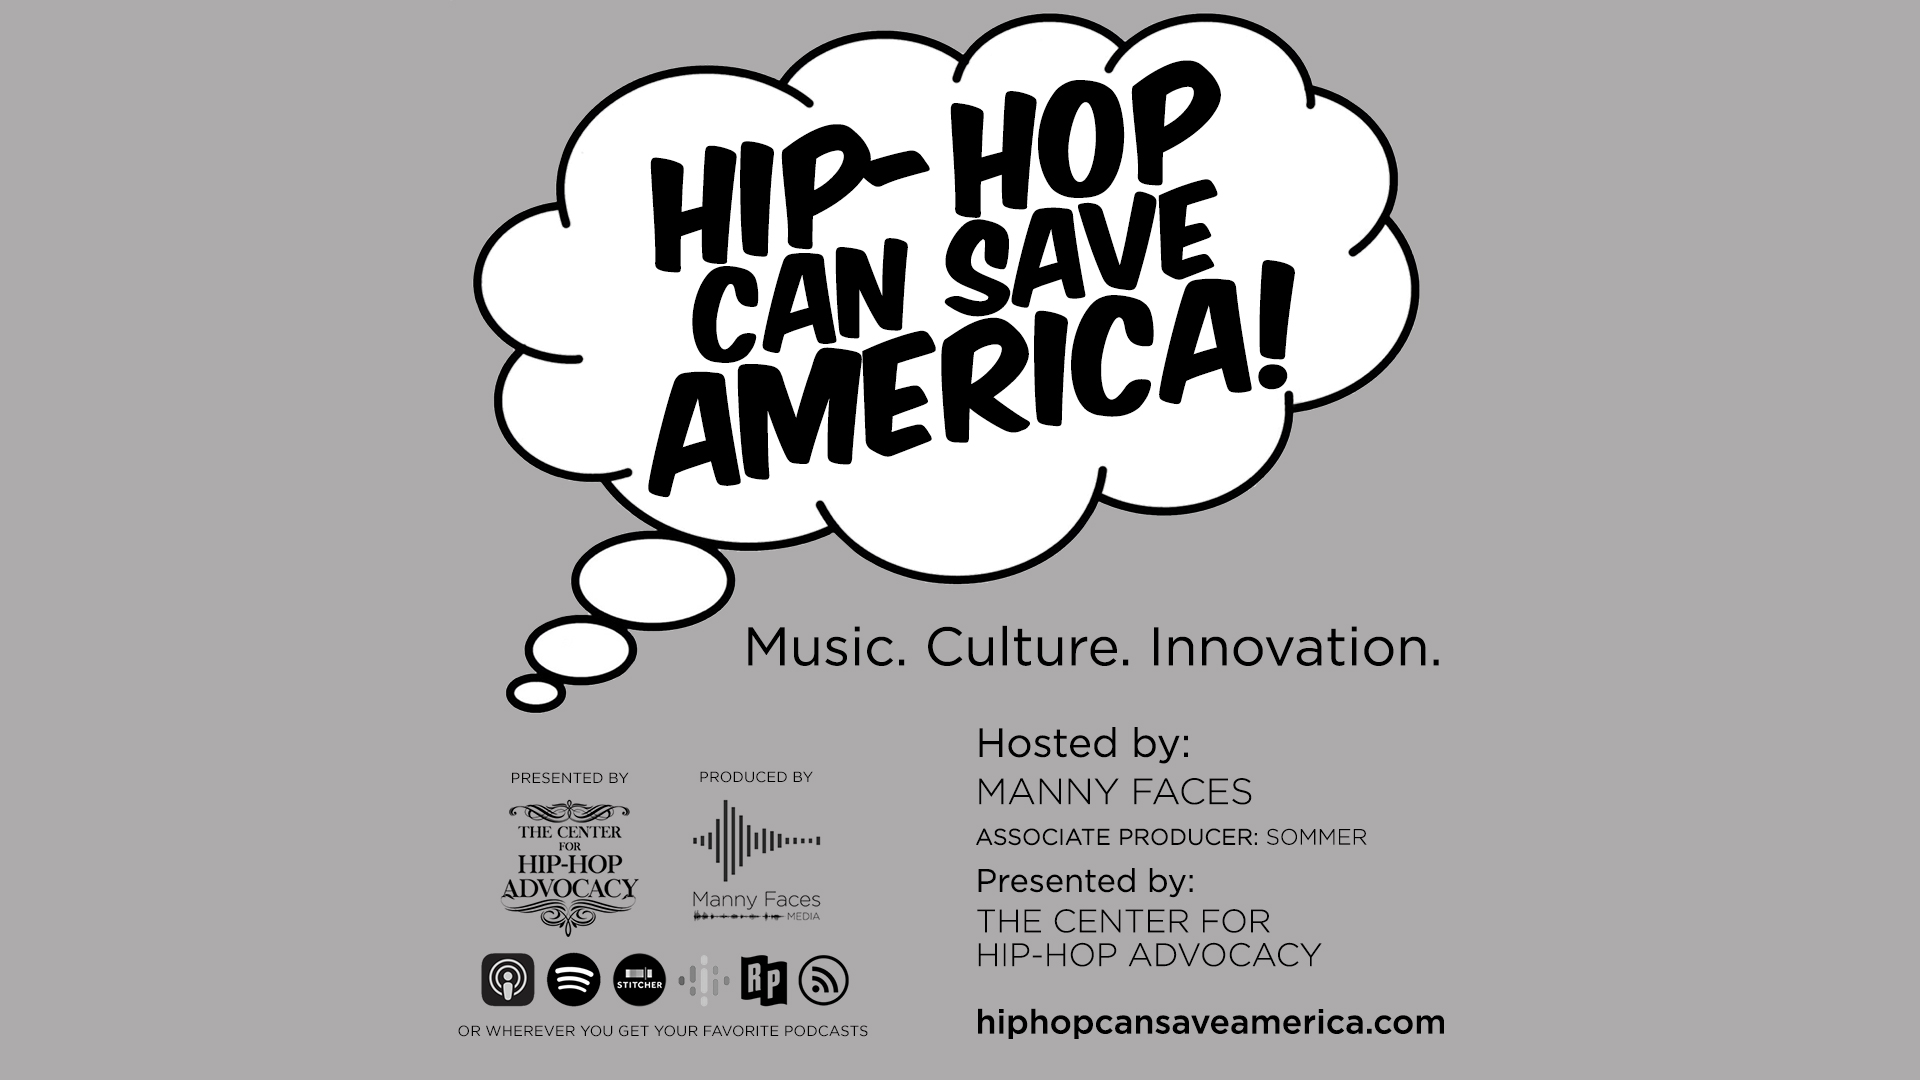 Hip-Hop Can Save America! The Podcast